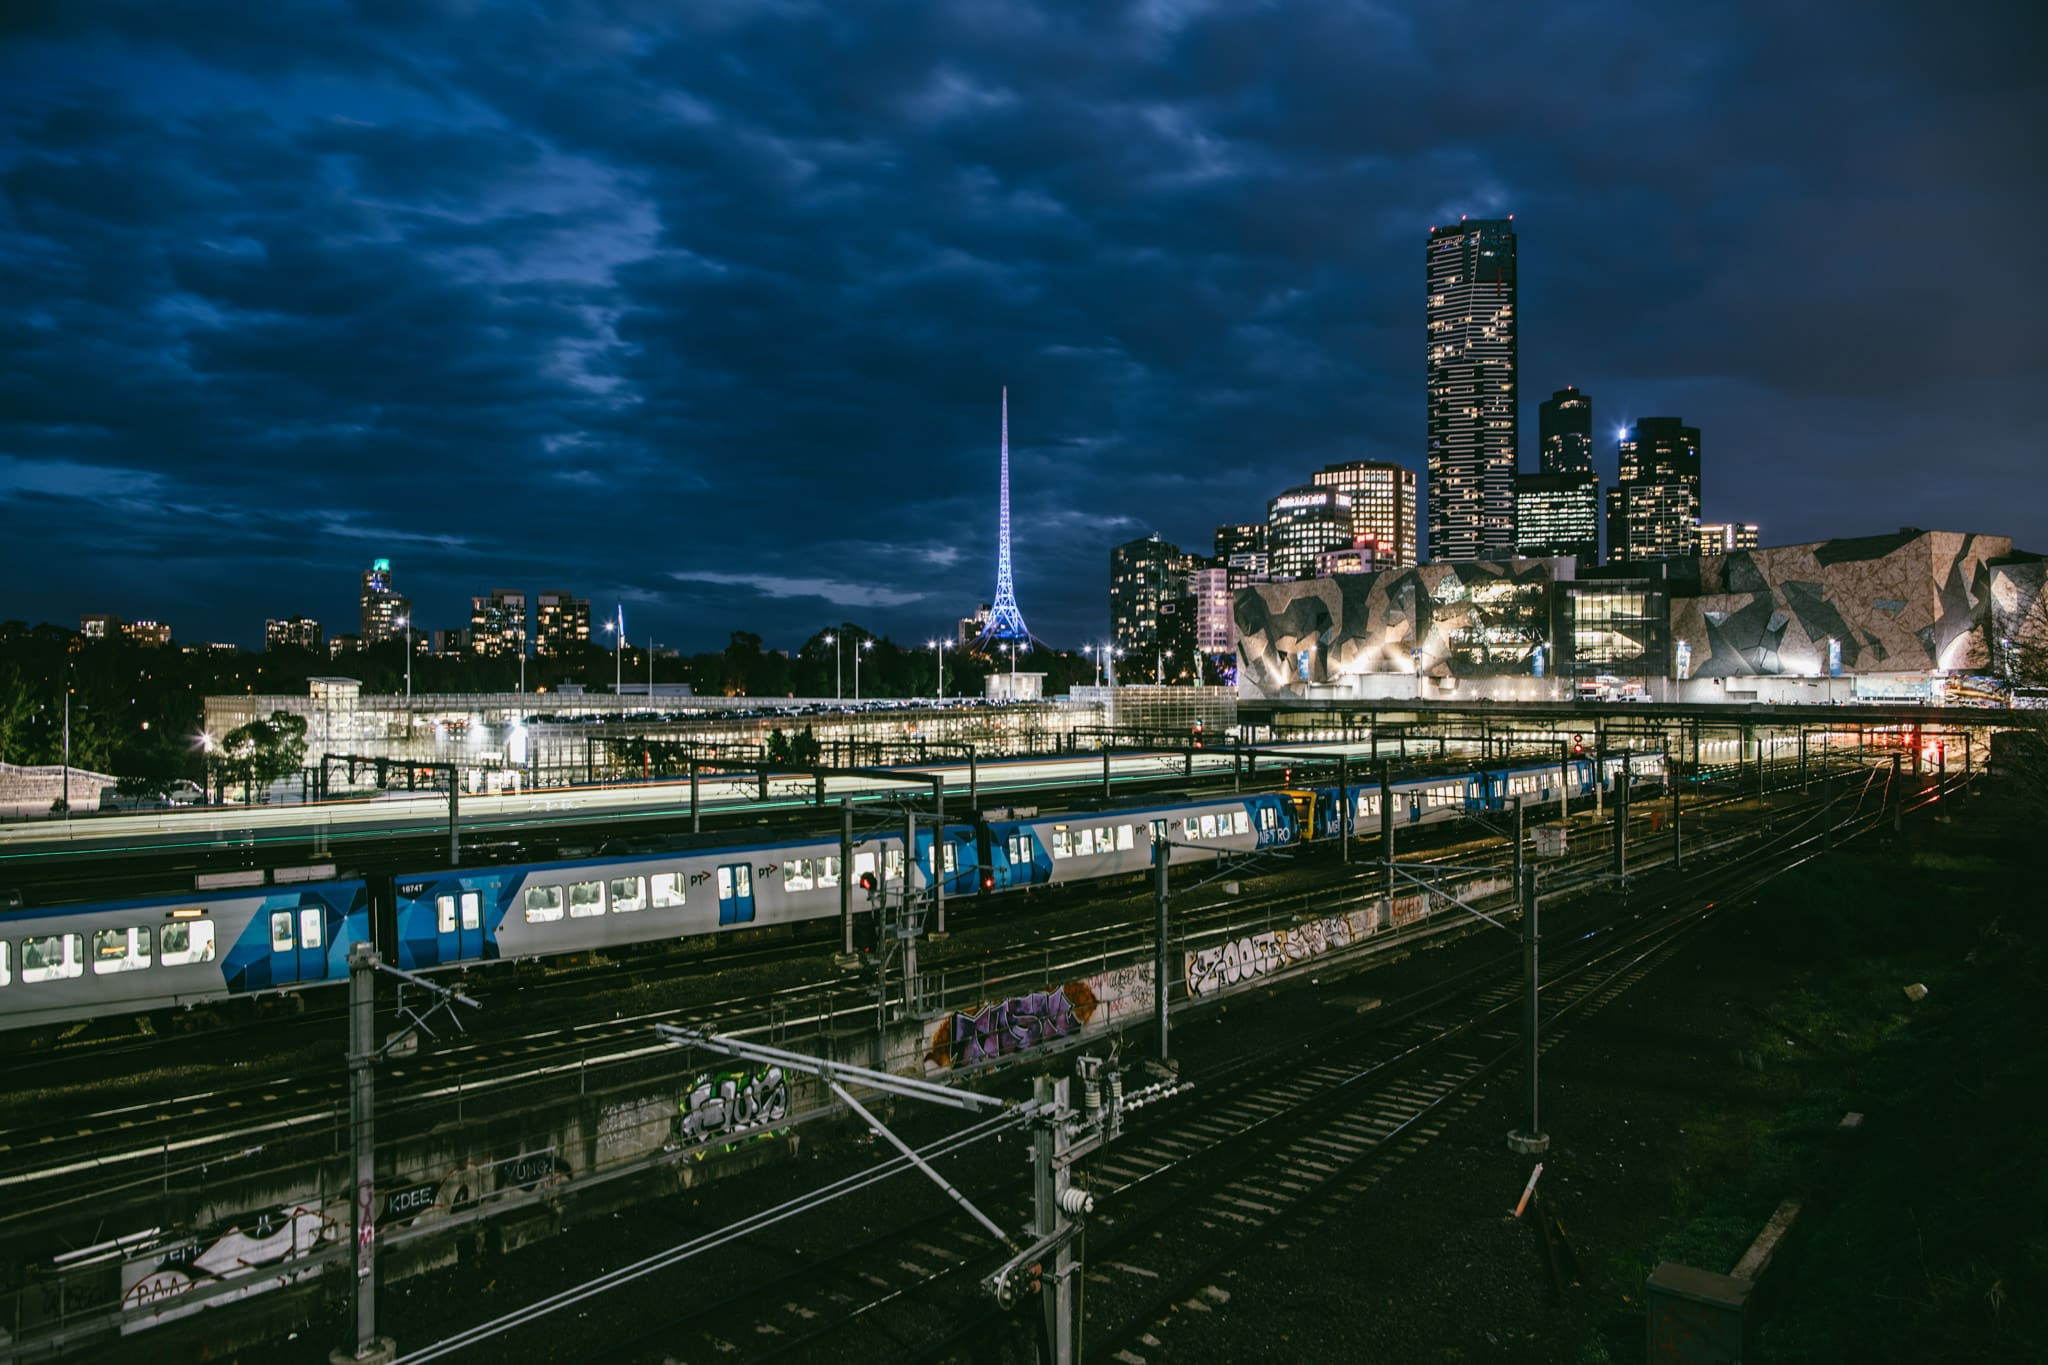 Melbourne CBD Skyline from Flinders Street - Federation Square at Night - Best photos in Melbourne